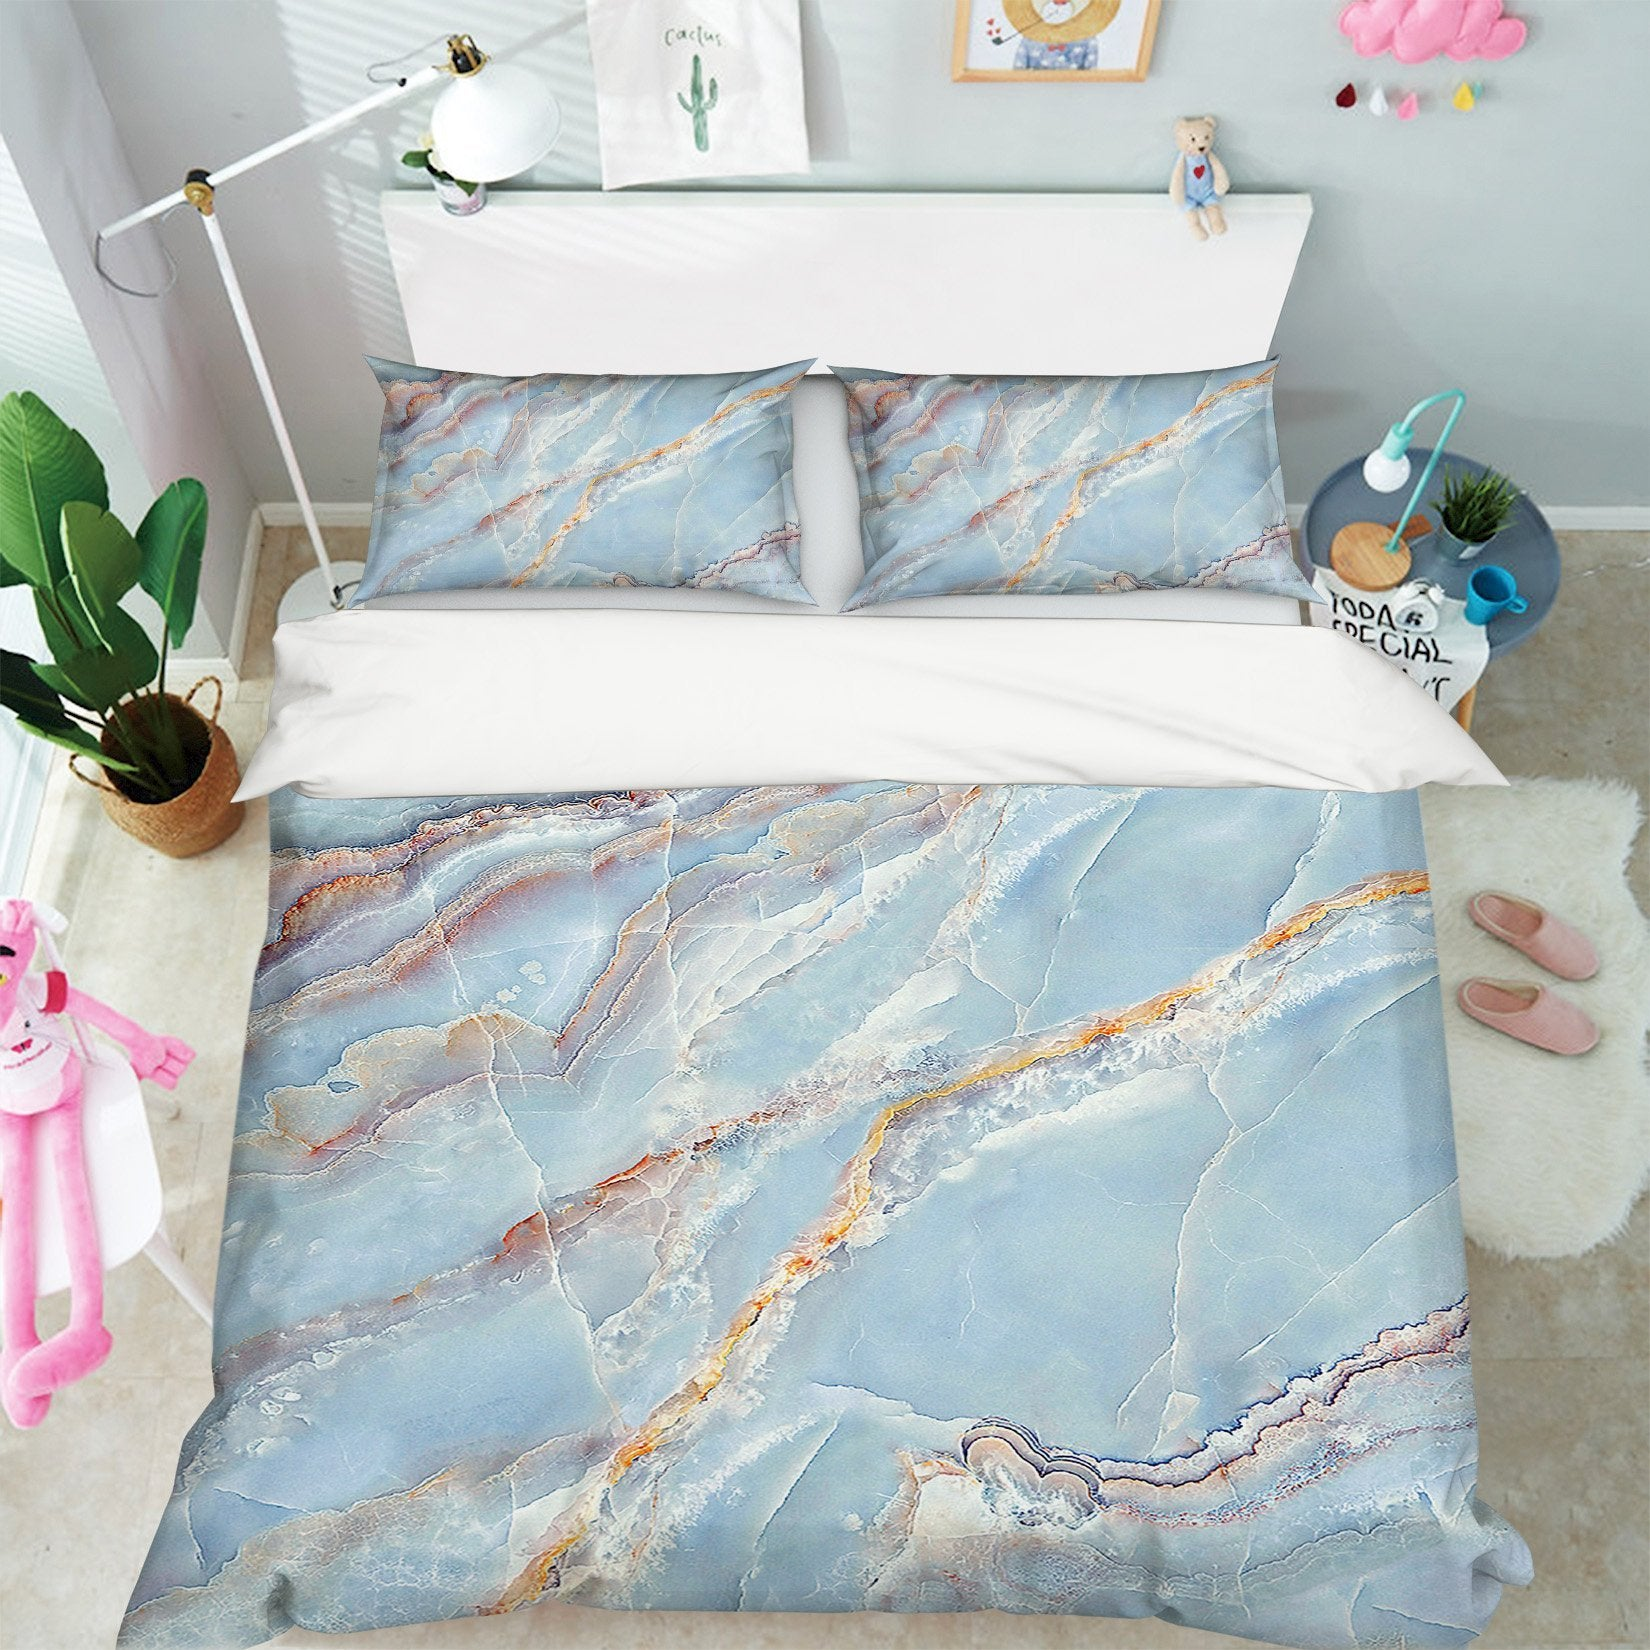 3D Marble Stone Pattern 030 Bed Pillowcases Quilt Wallpaper AJ Wallpaper